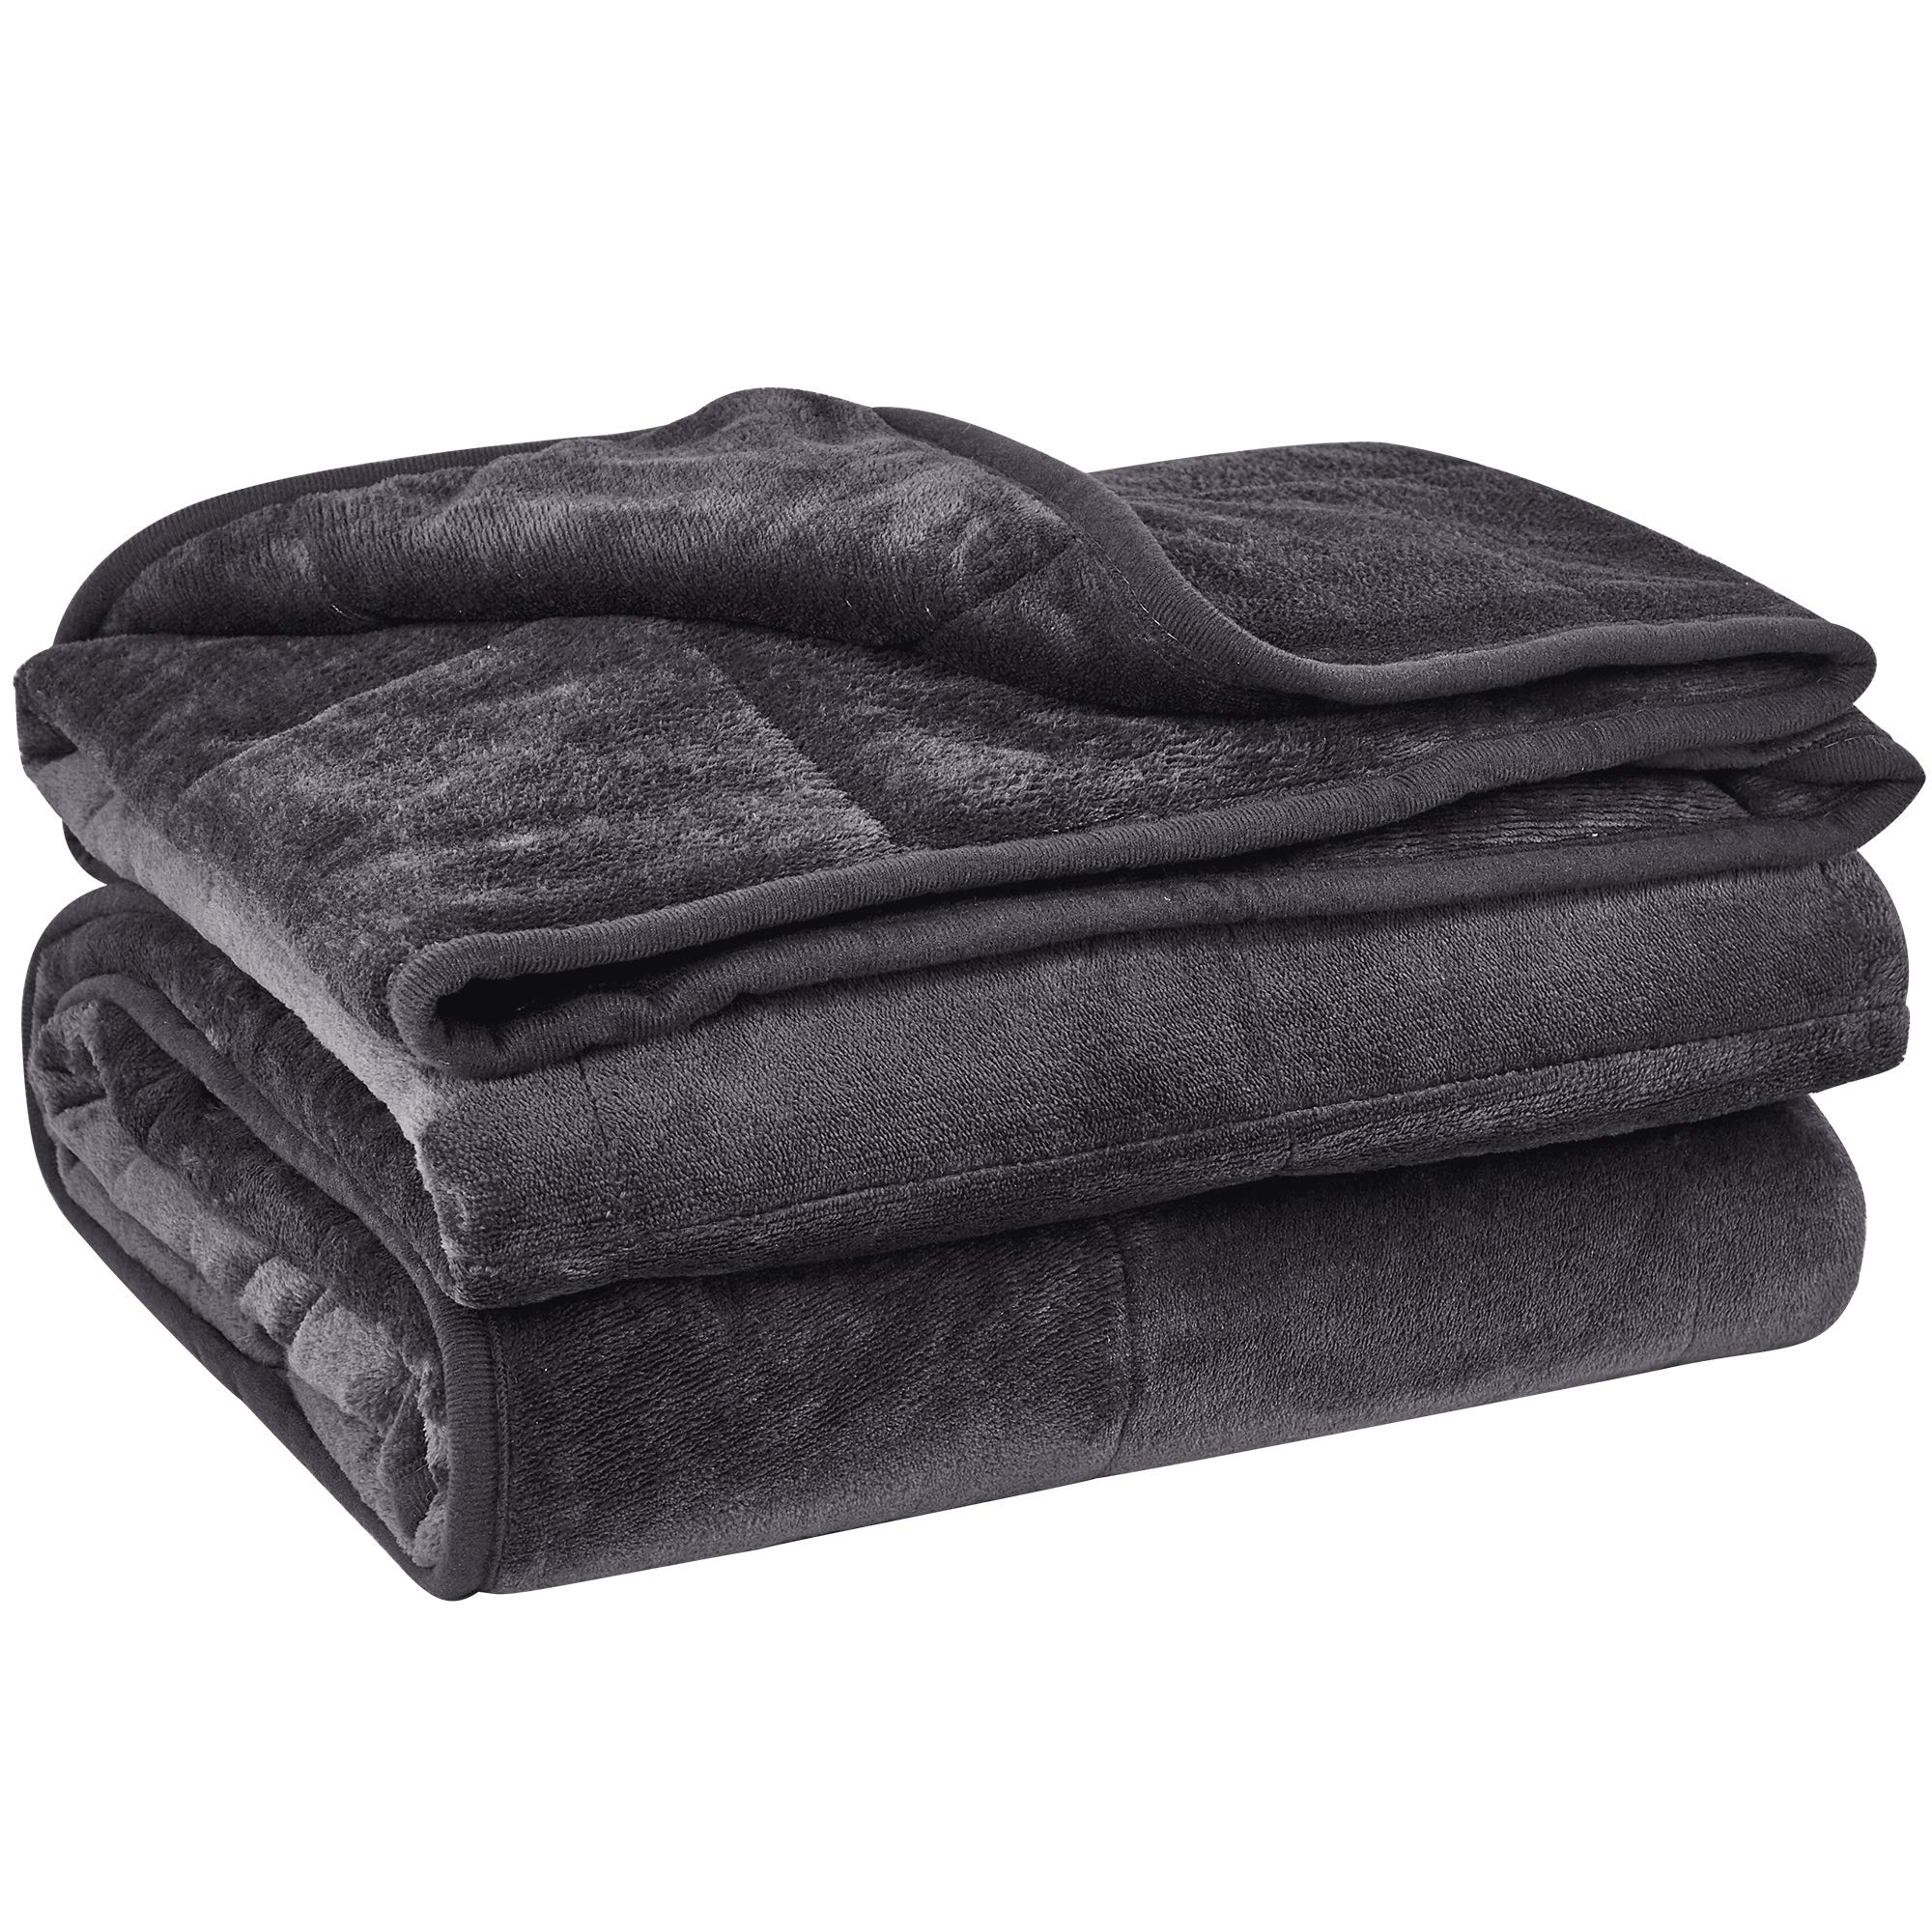 puredown Cozy and Luxury Weighted Blanket for Adults, Youths Heavy Blanket with Glass Beads Flannel Shell Fabric Deliver Durability and Comfort 10 lbs 41'' 60'' Dark Grey